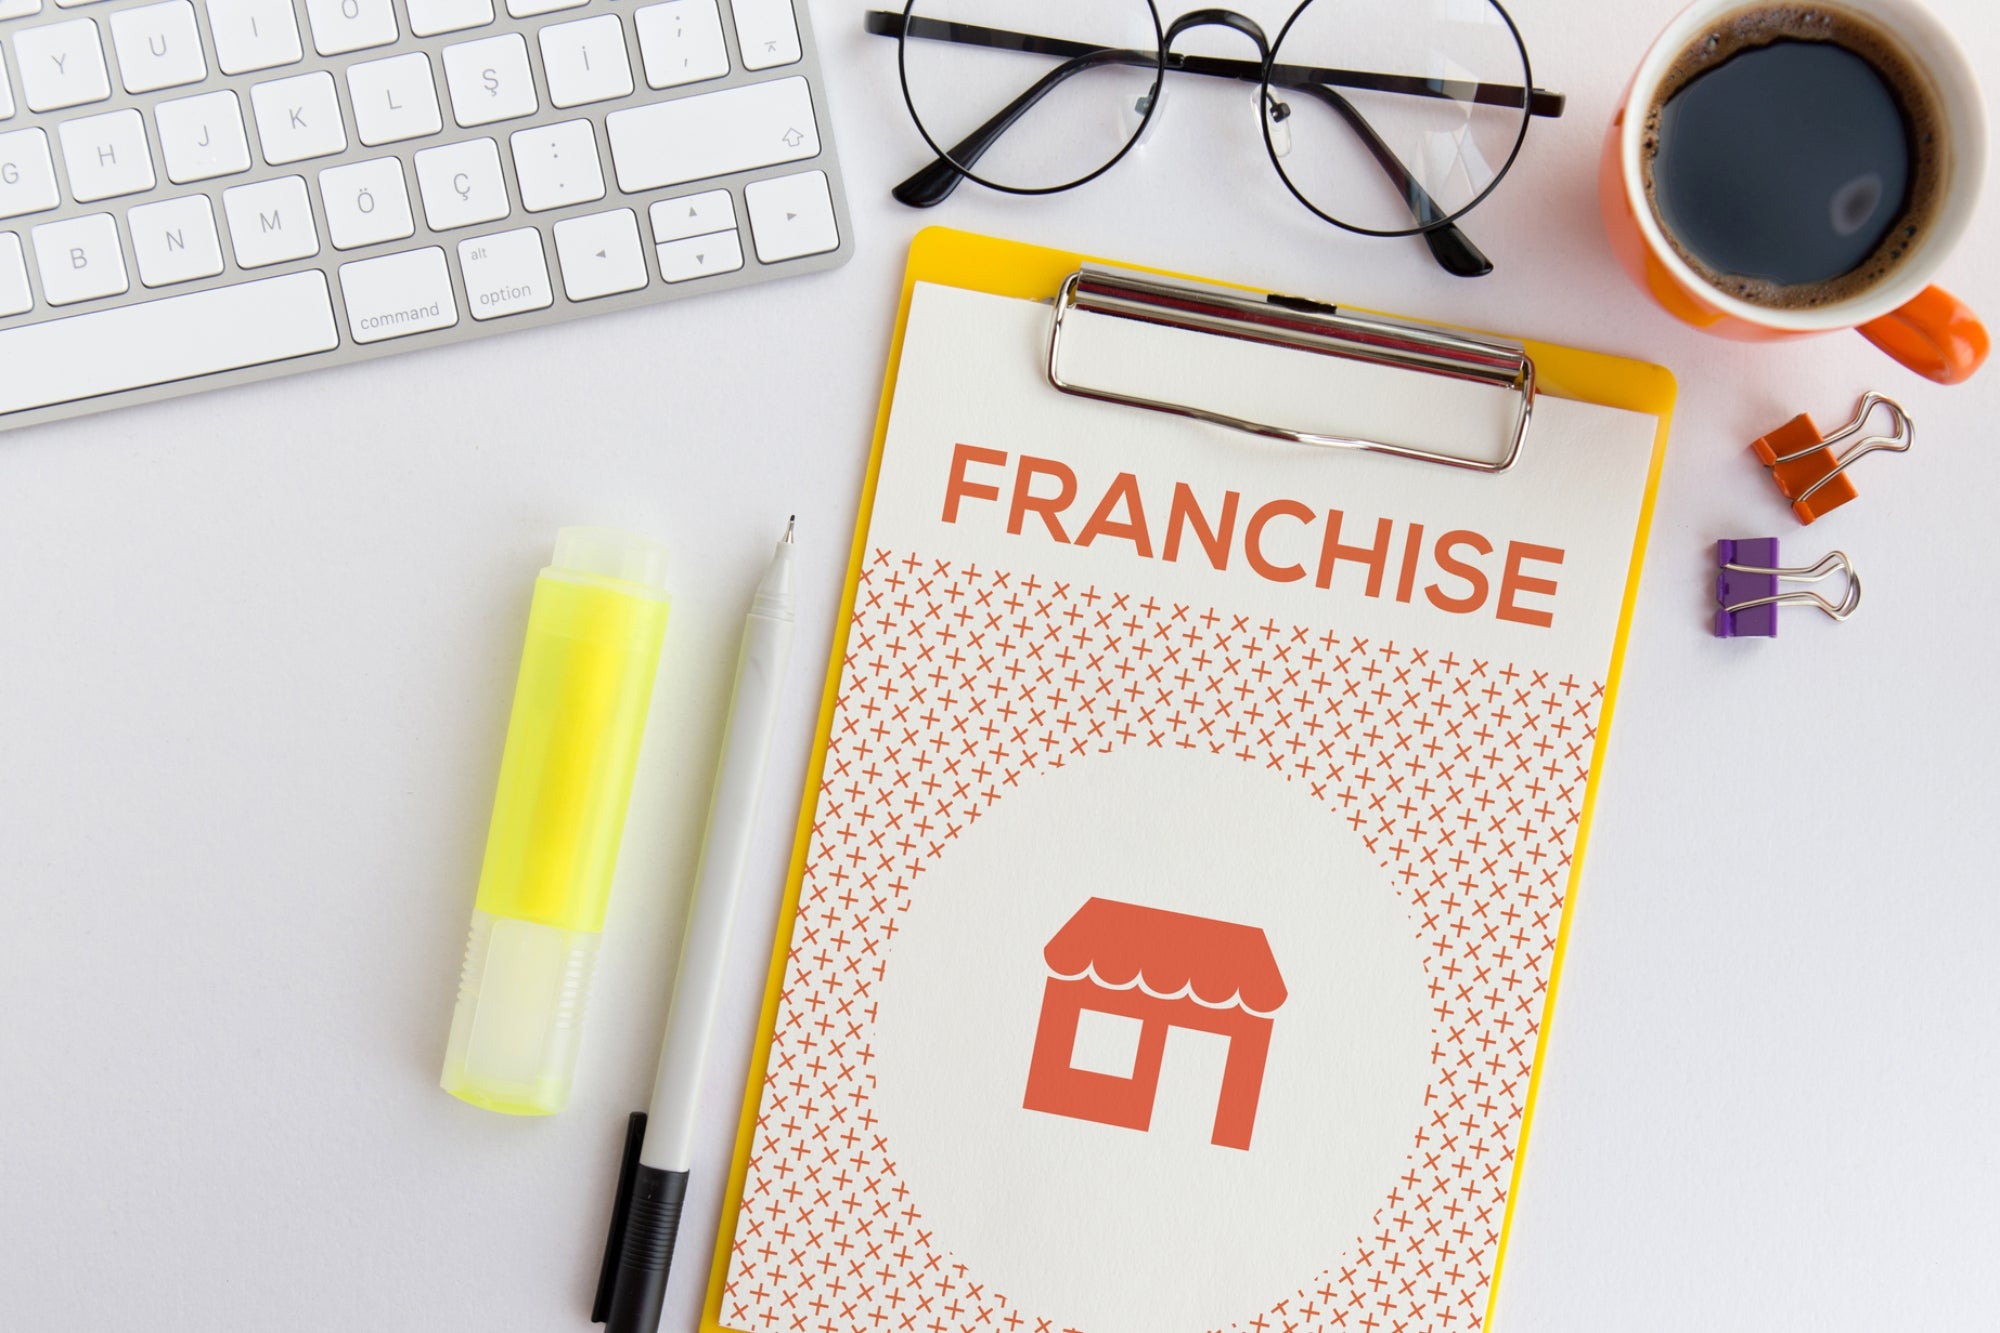 5 Steps to Becoming a Franchise Owner